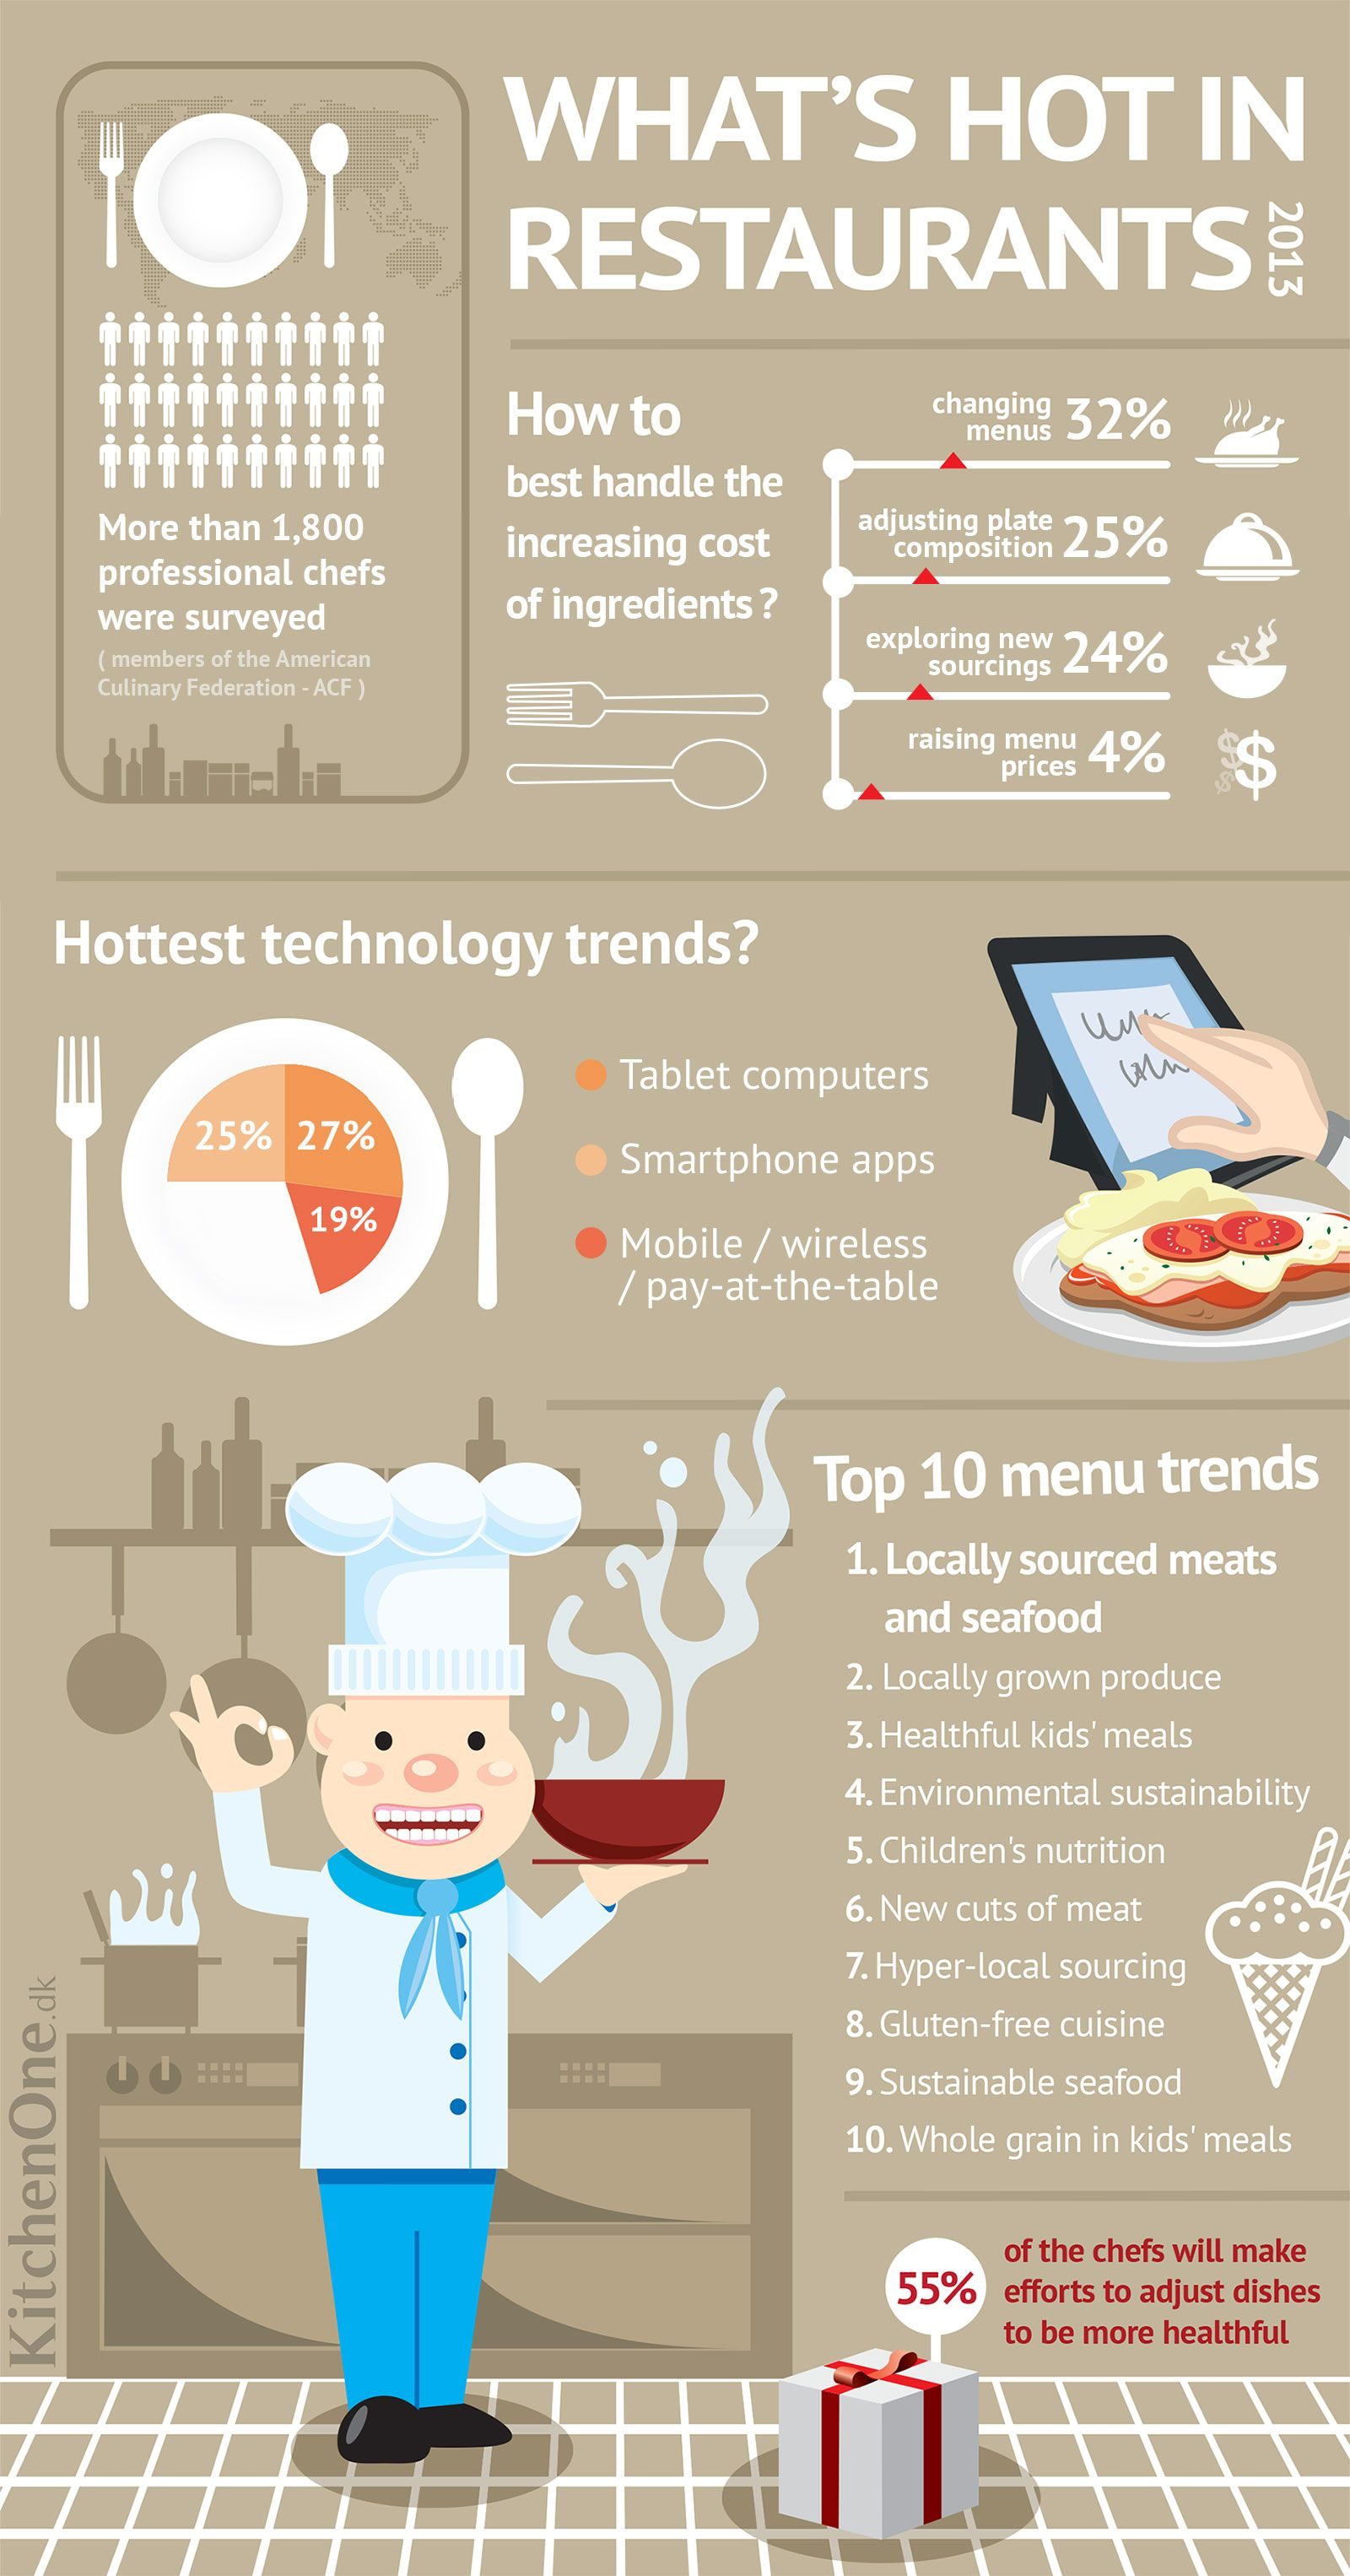 Top 10 What's Hot in Restaurants 2013 (Infographic) - healthful choices and locally sourced food